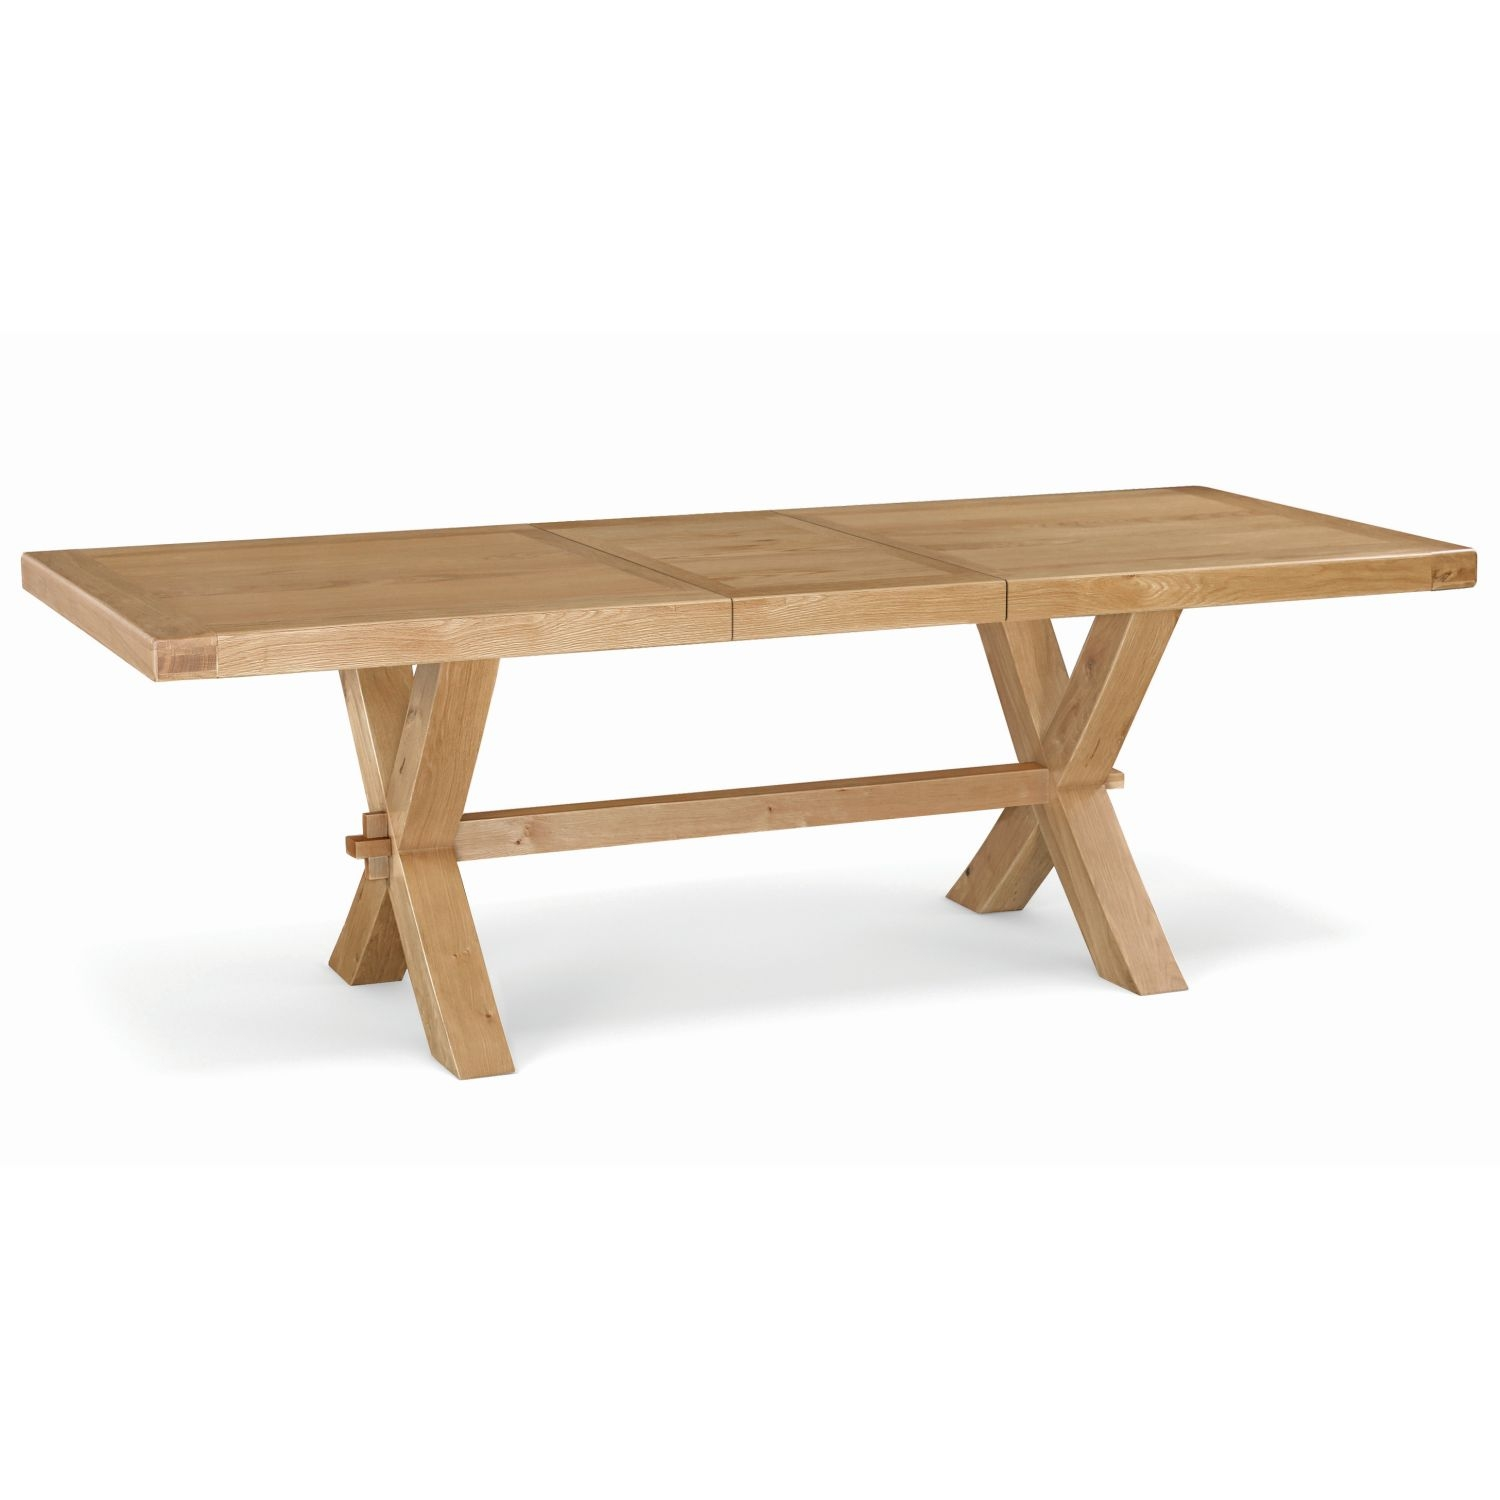 Image of Fairford Cross Extending Dining Table